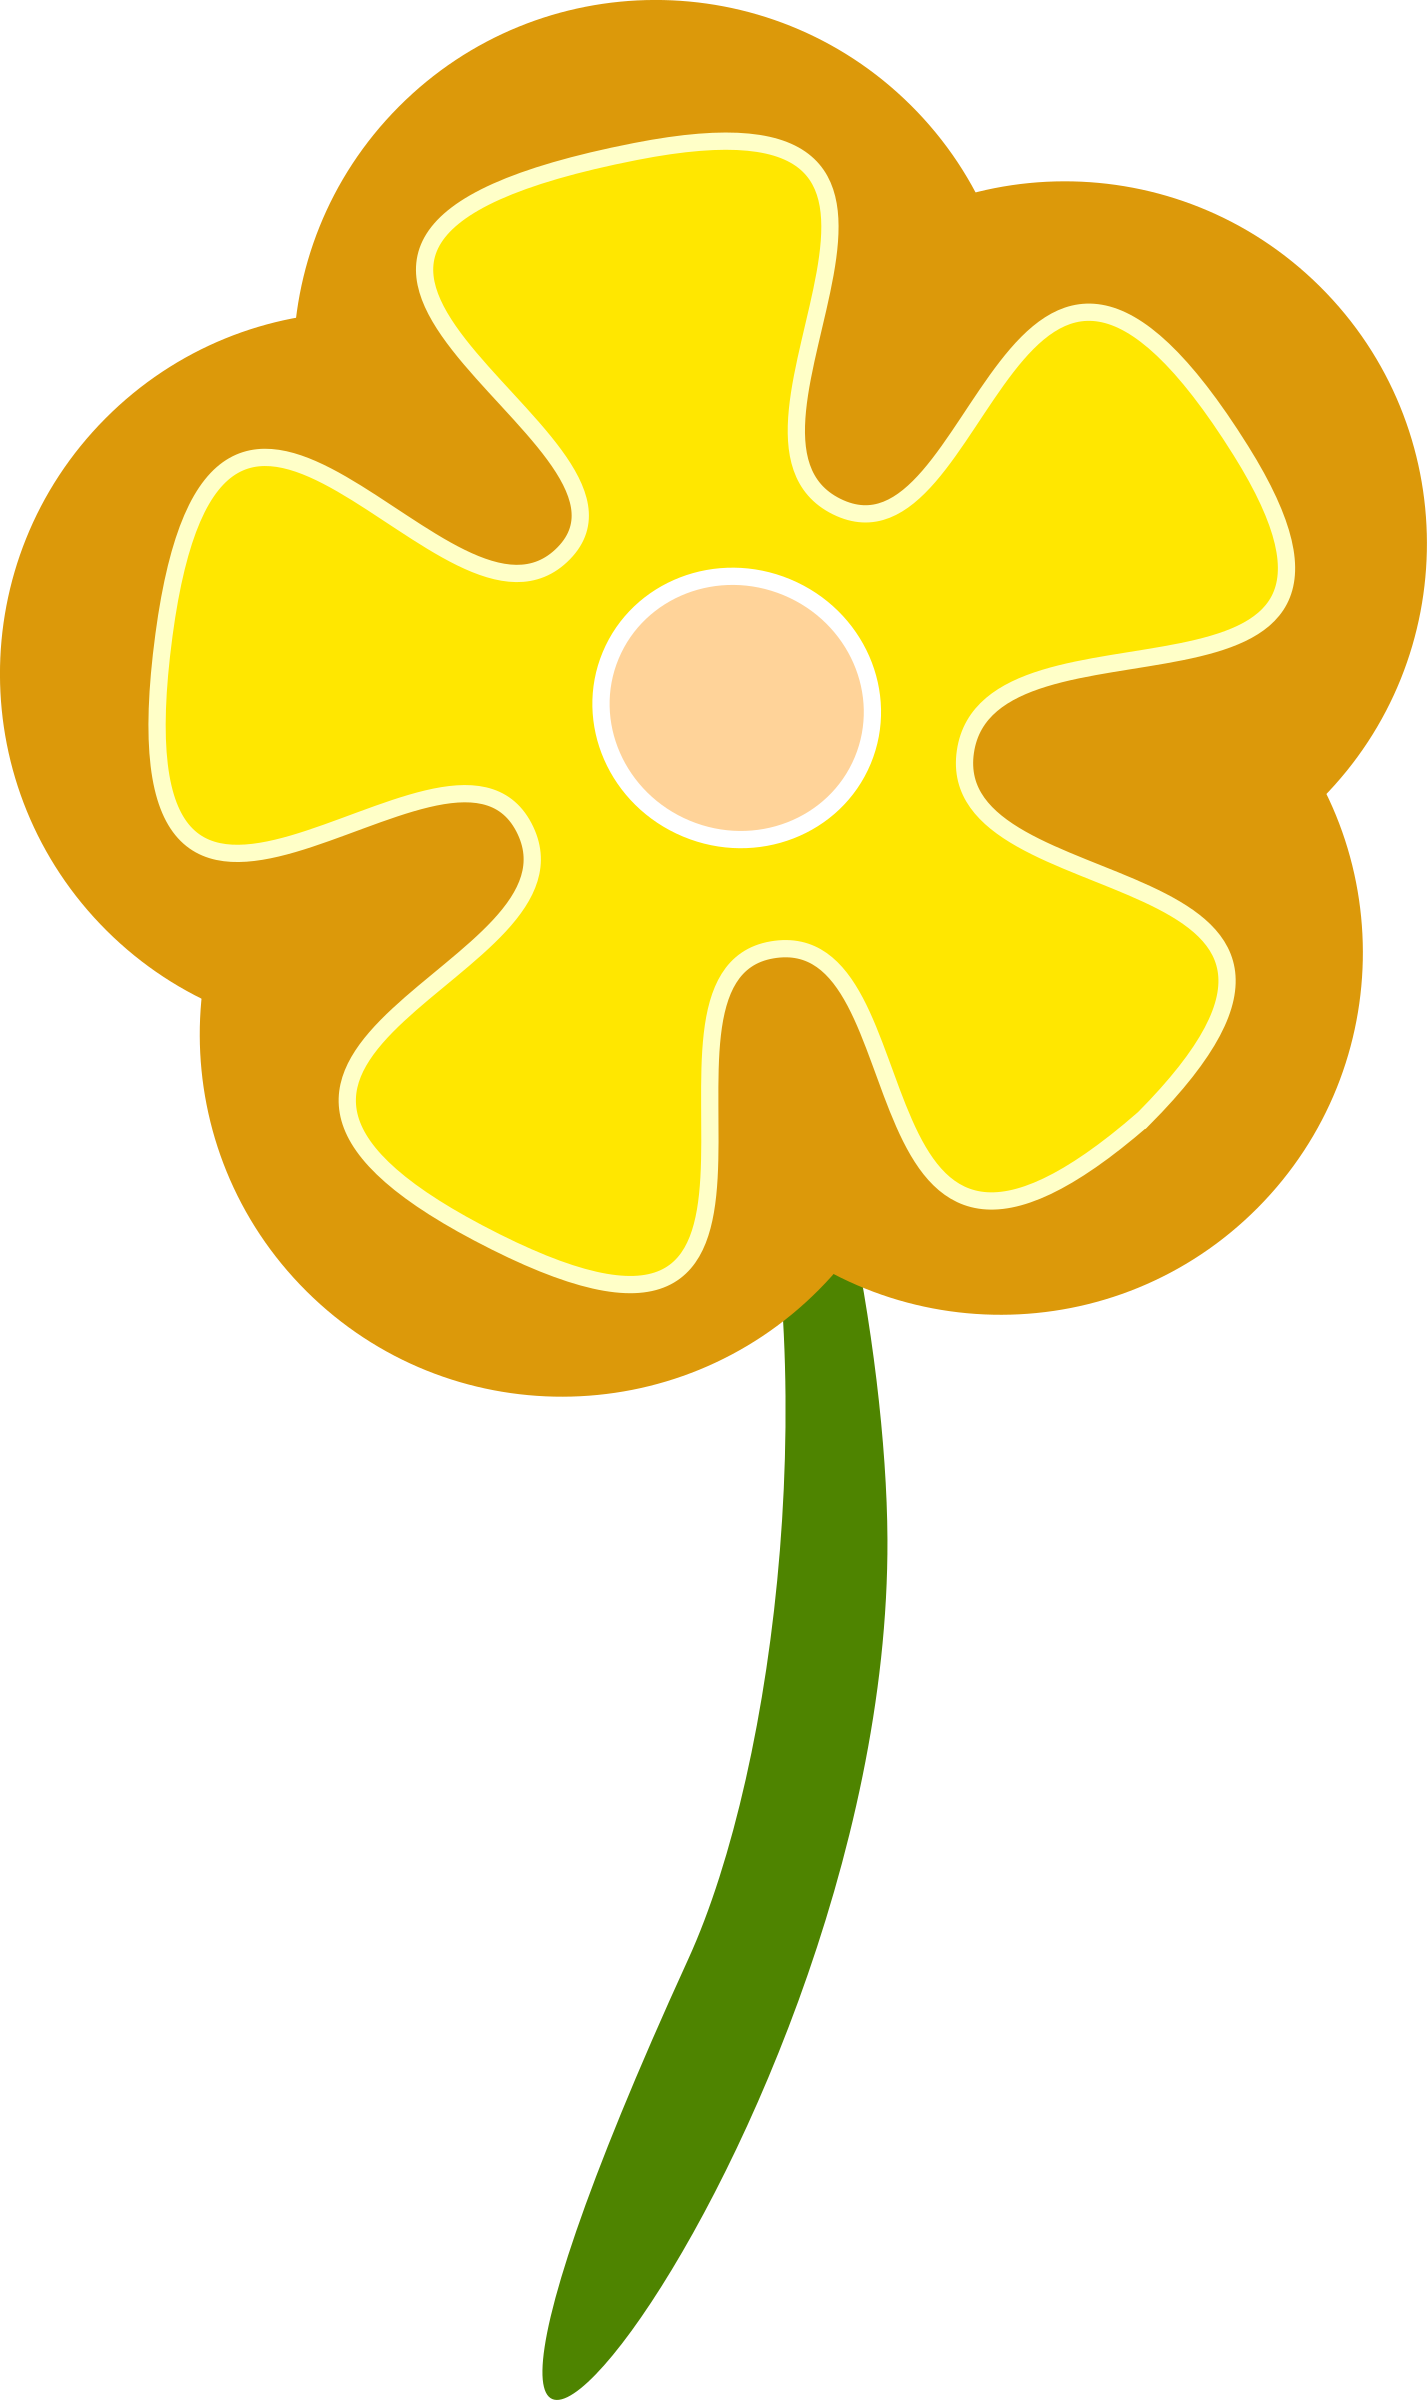 Flower clipart simple. Big image png